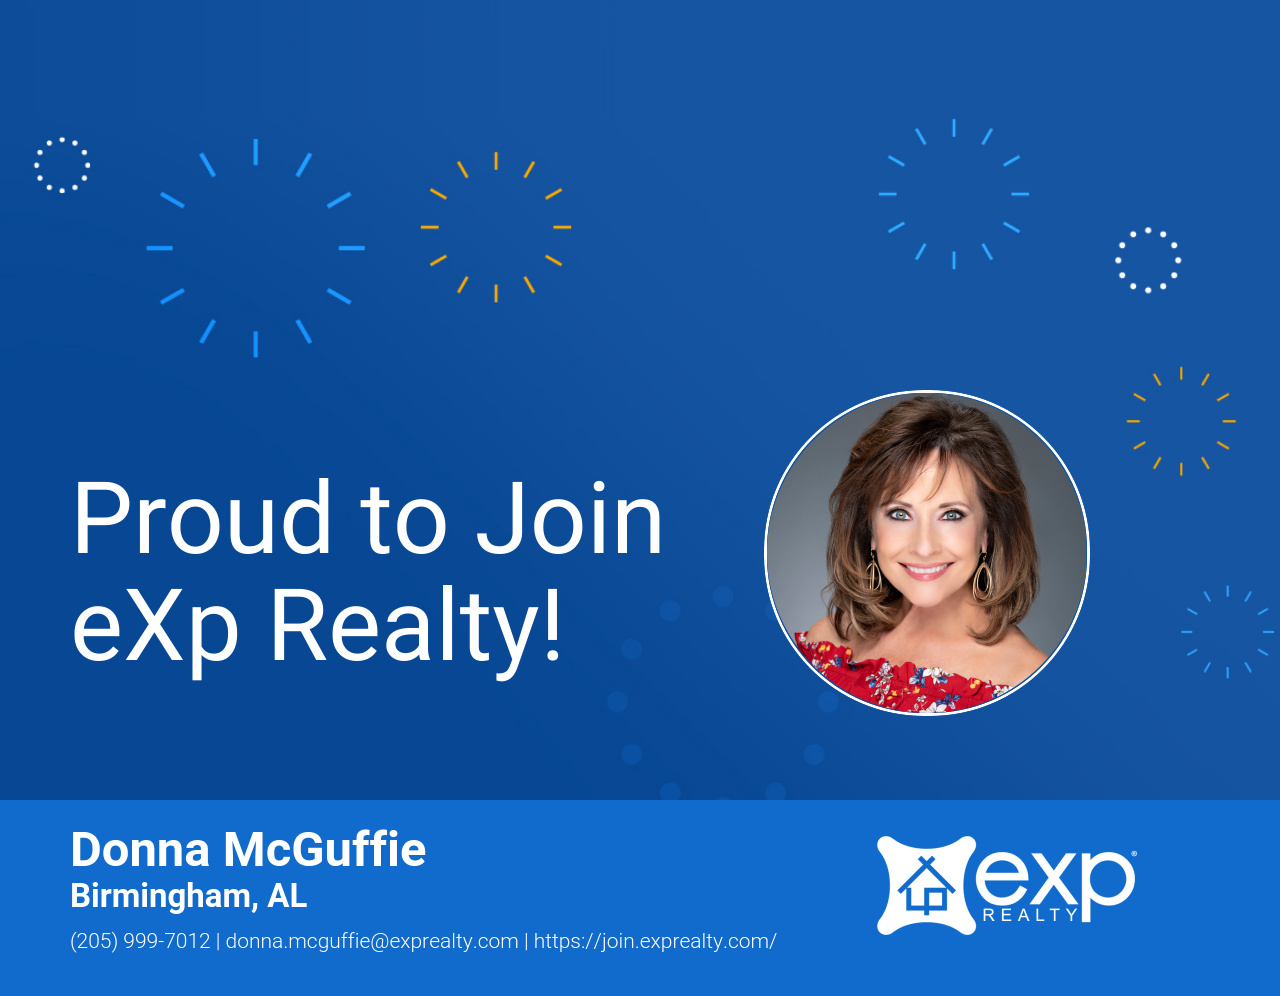 eXp Realty Welcomes Donna McGuffie!